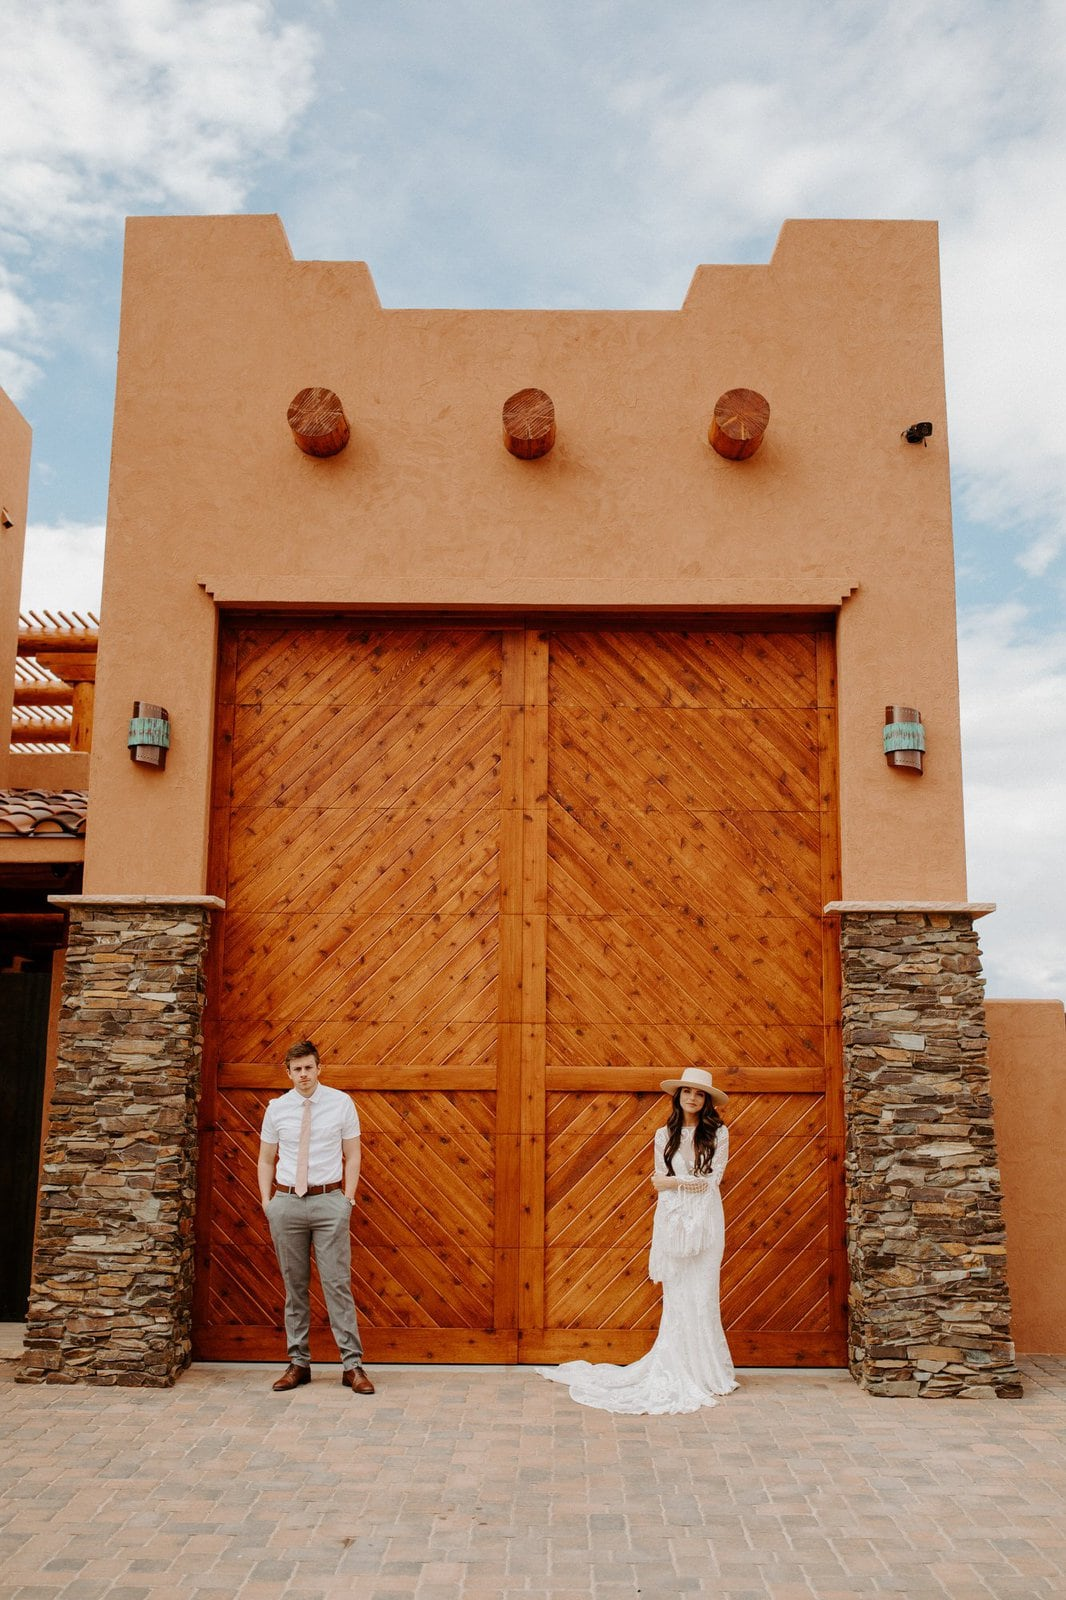 Bride and groom photography in Arizona.